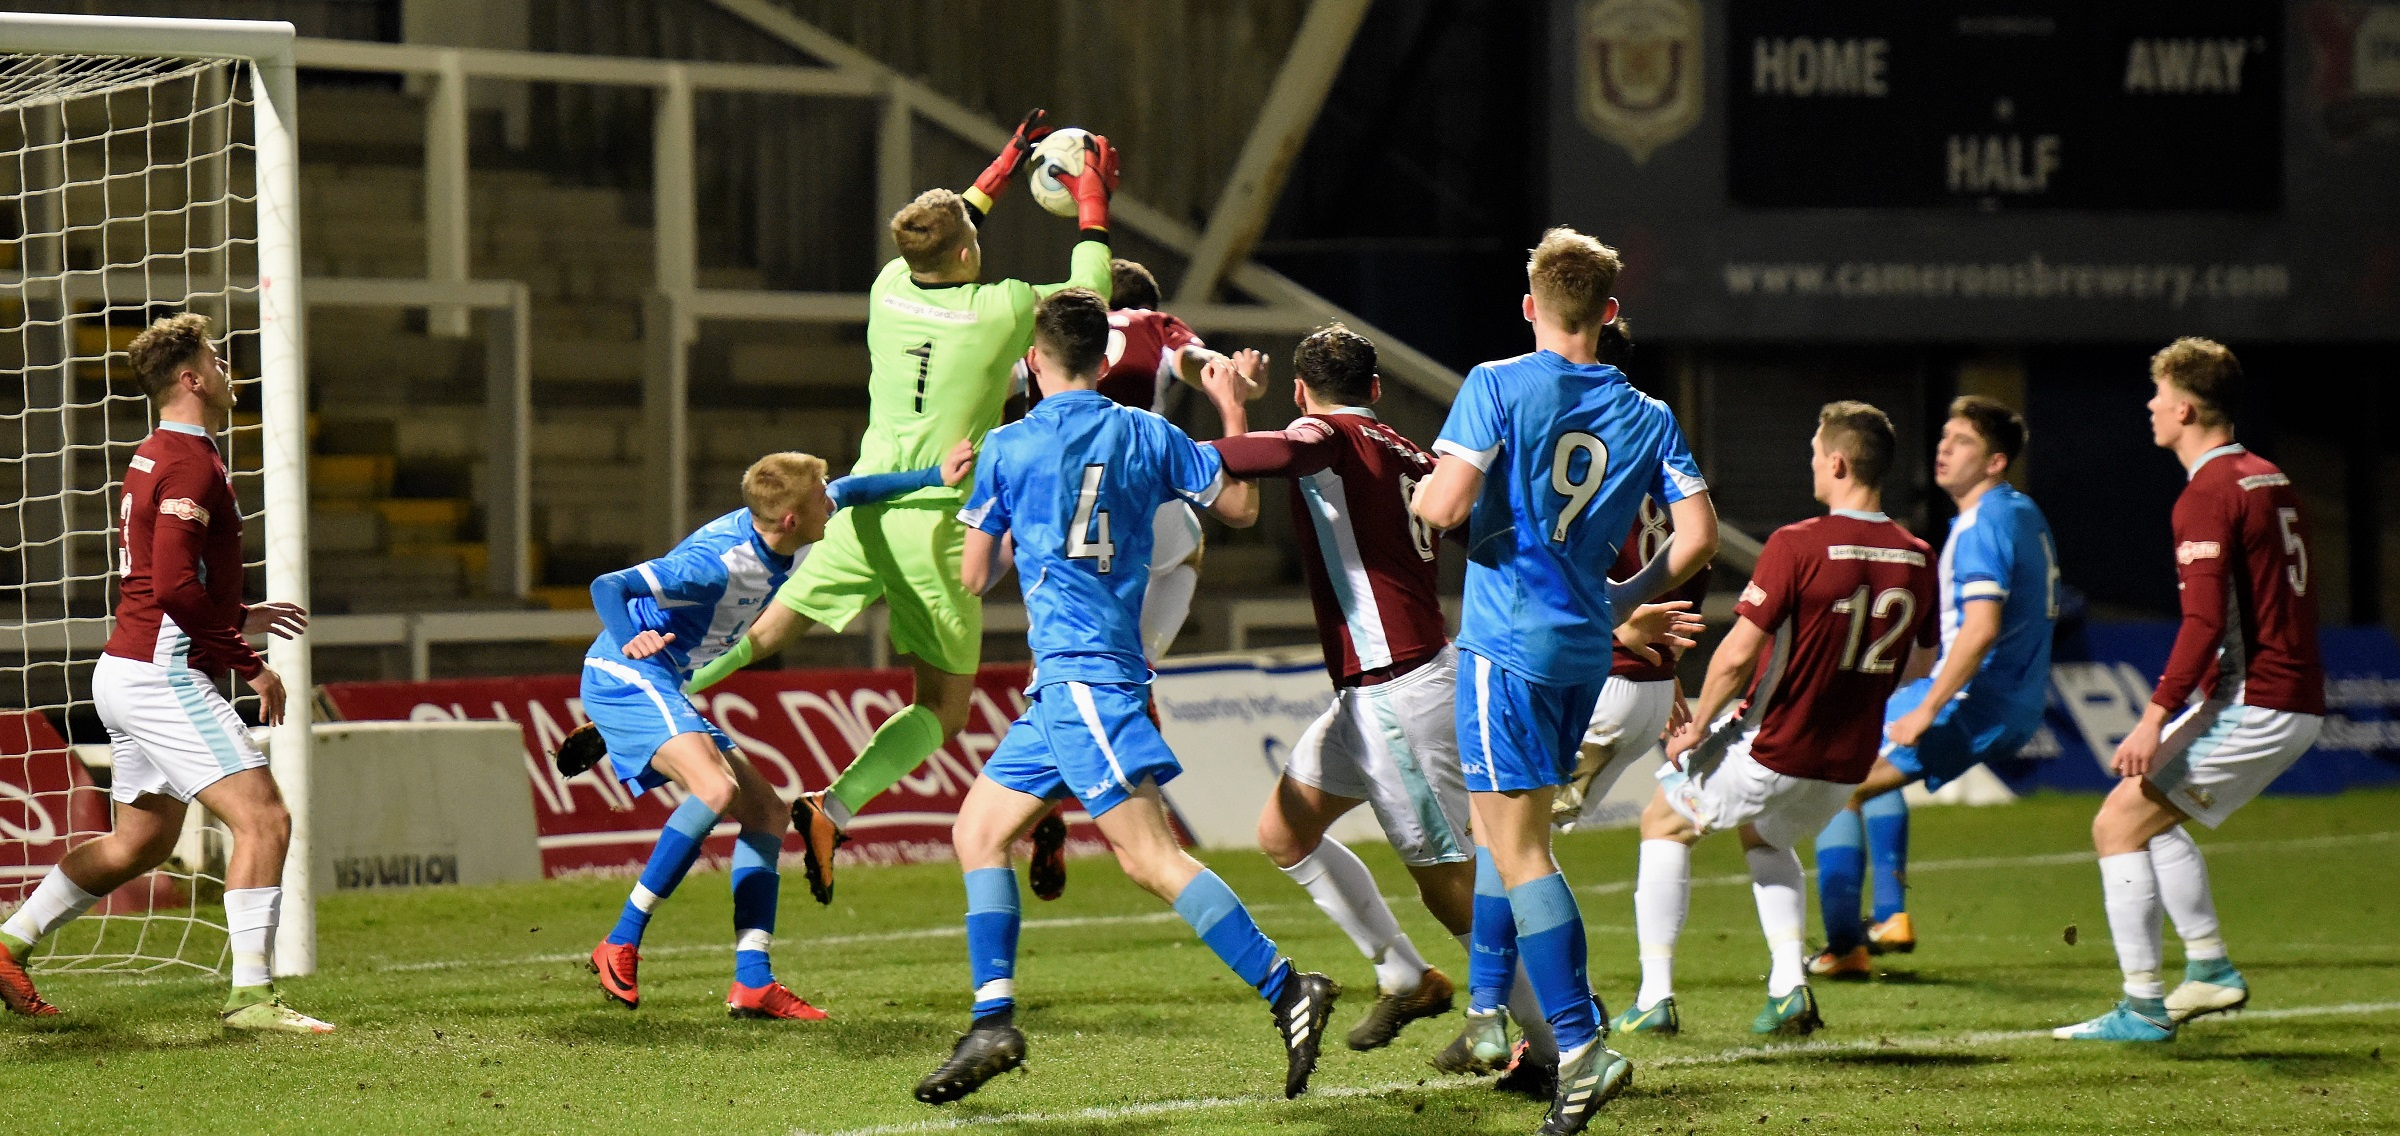 Hartlepool United vs South Shields